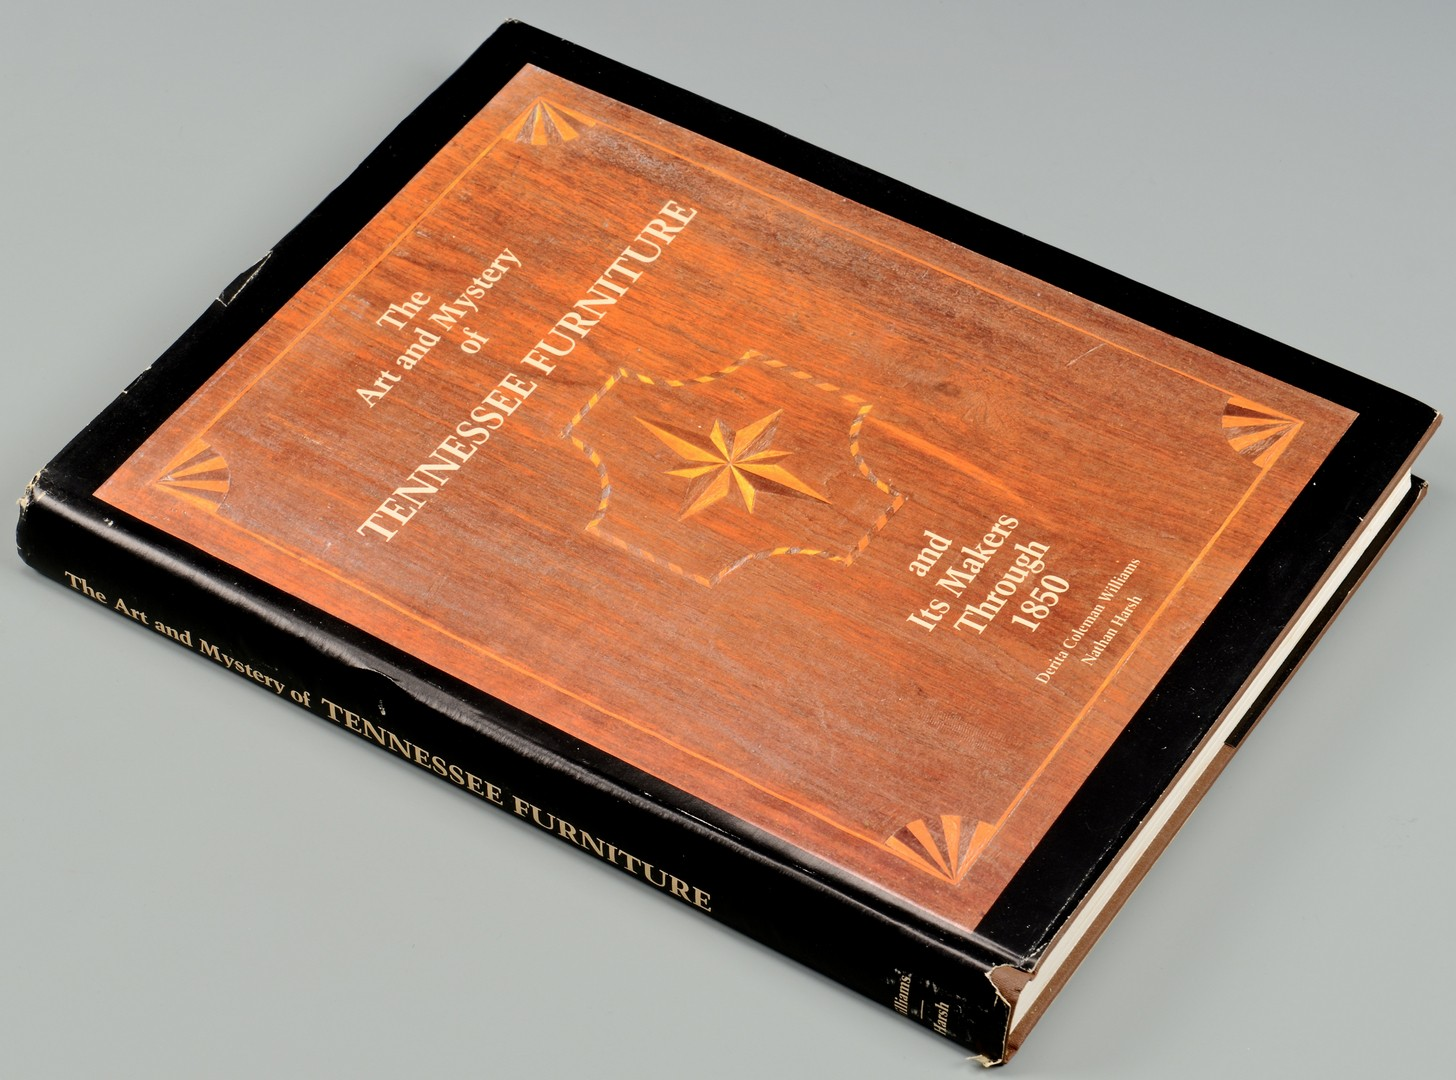 Lot 746: Book: The Art and Mystery of TN Furniture